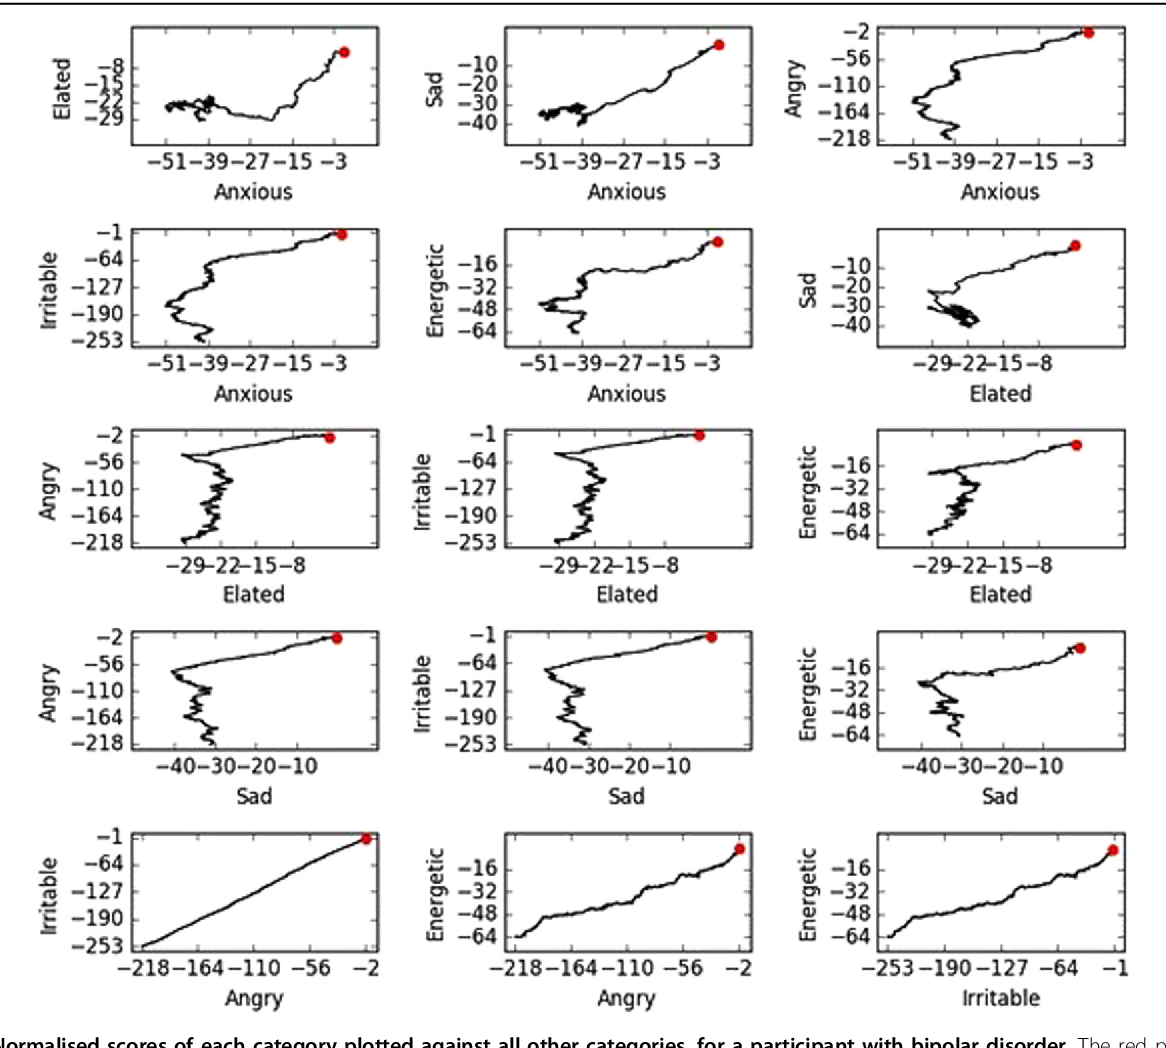 Figure 4 for A signature-based machine learning model for bipolar disorder and borderline personality disorder